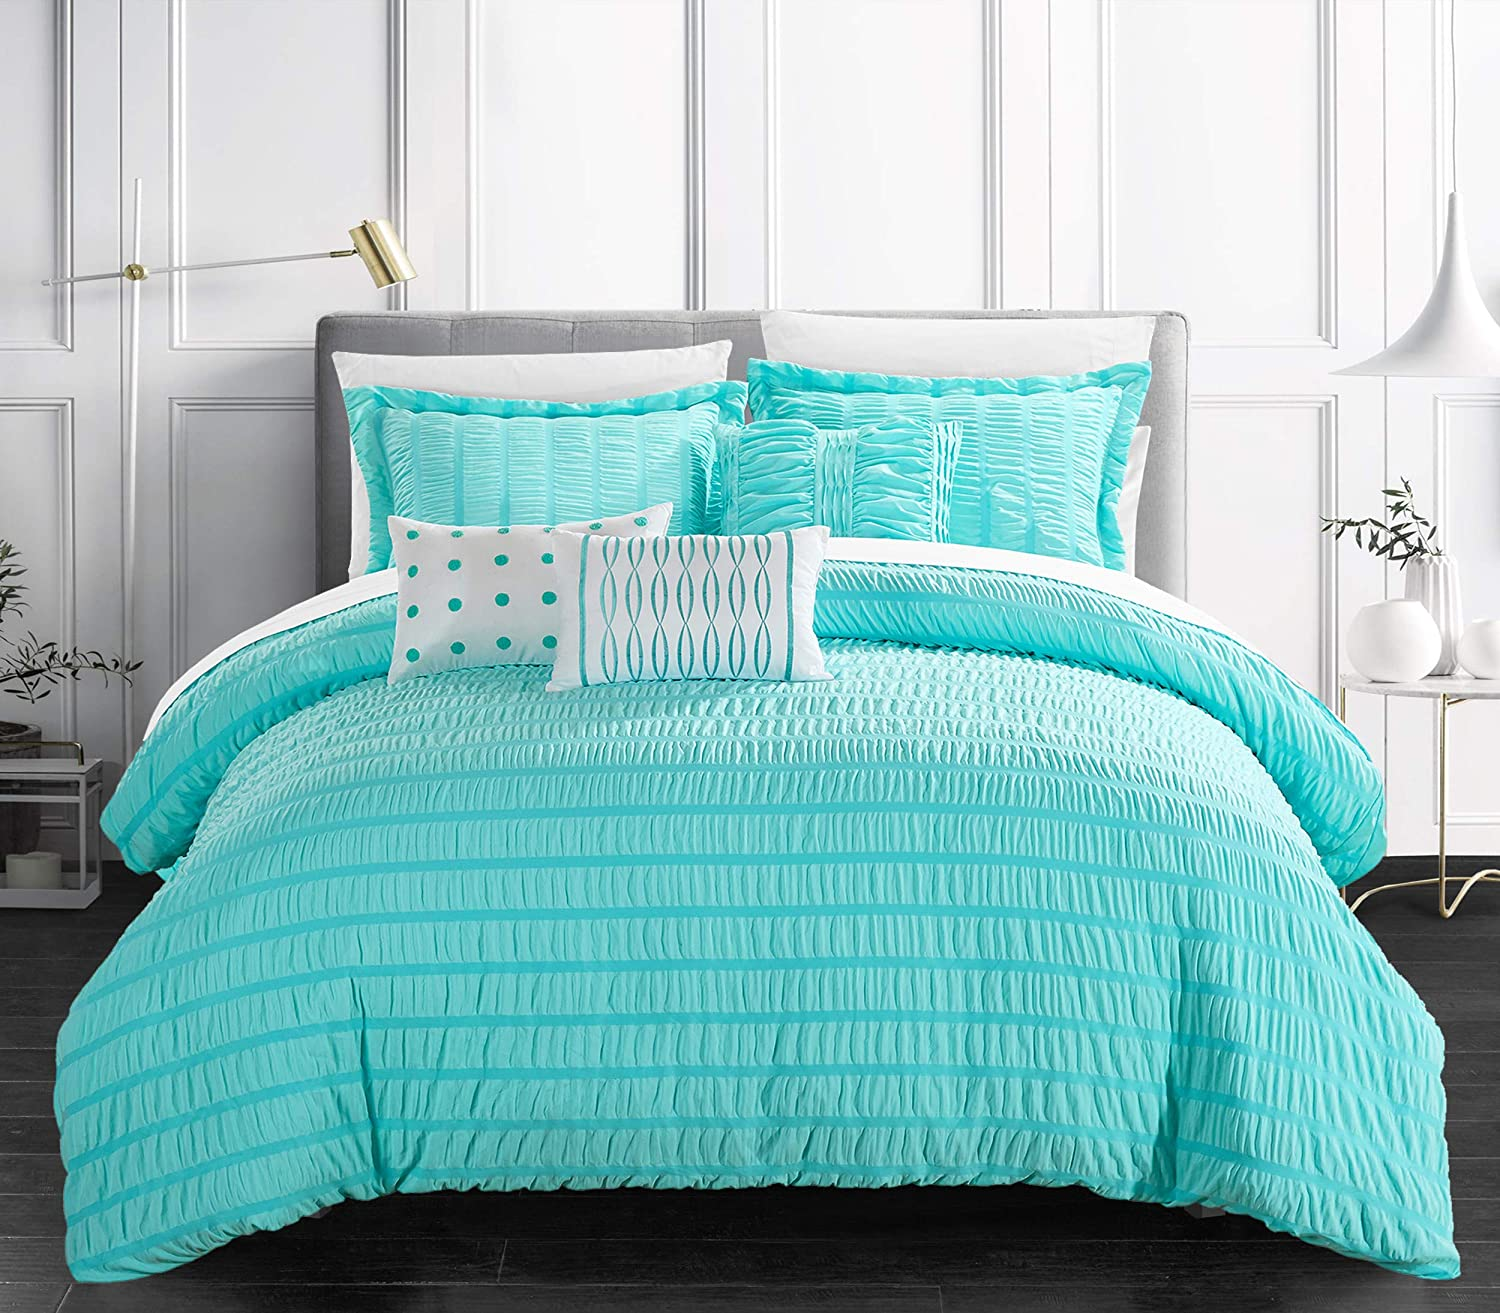 Chic Home Hadassah 6 Piece Comforter Striped Ruched Max 47% OFF trust Ruffled Set